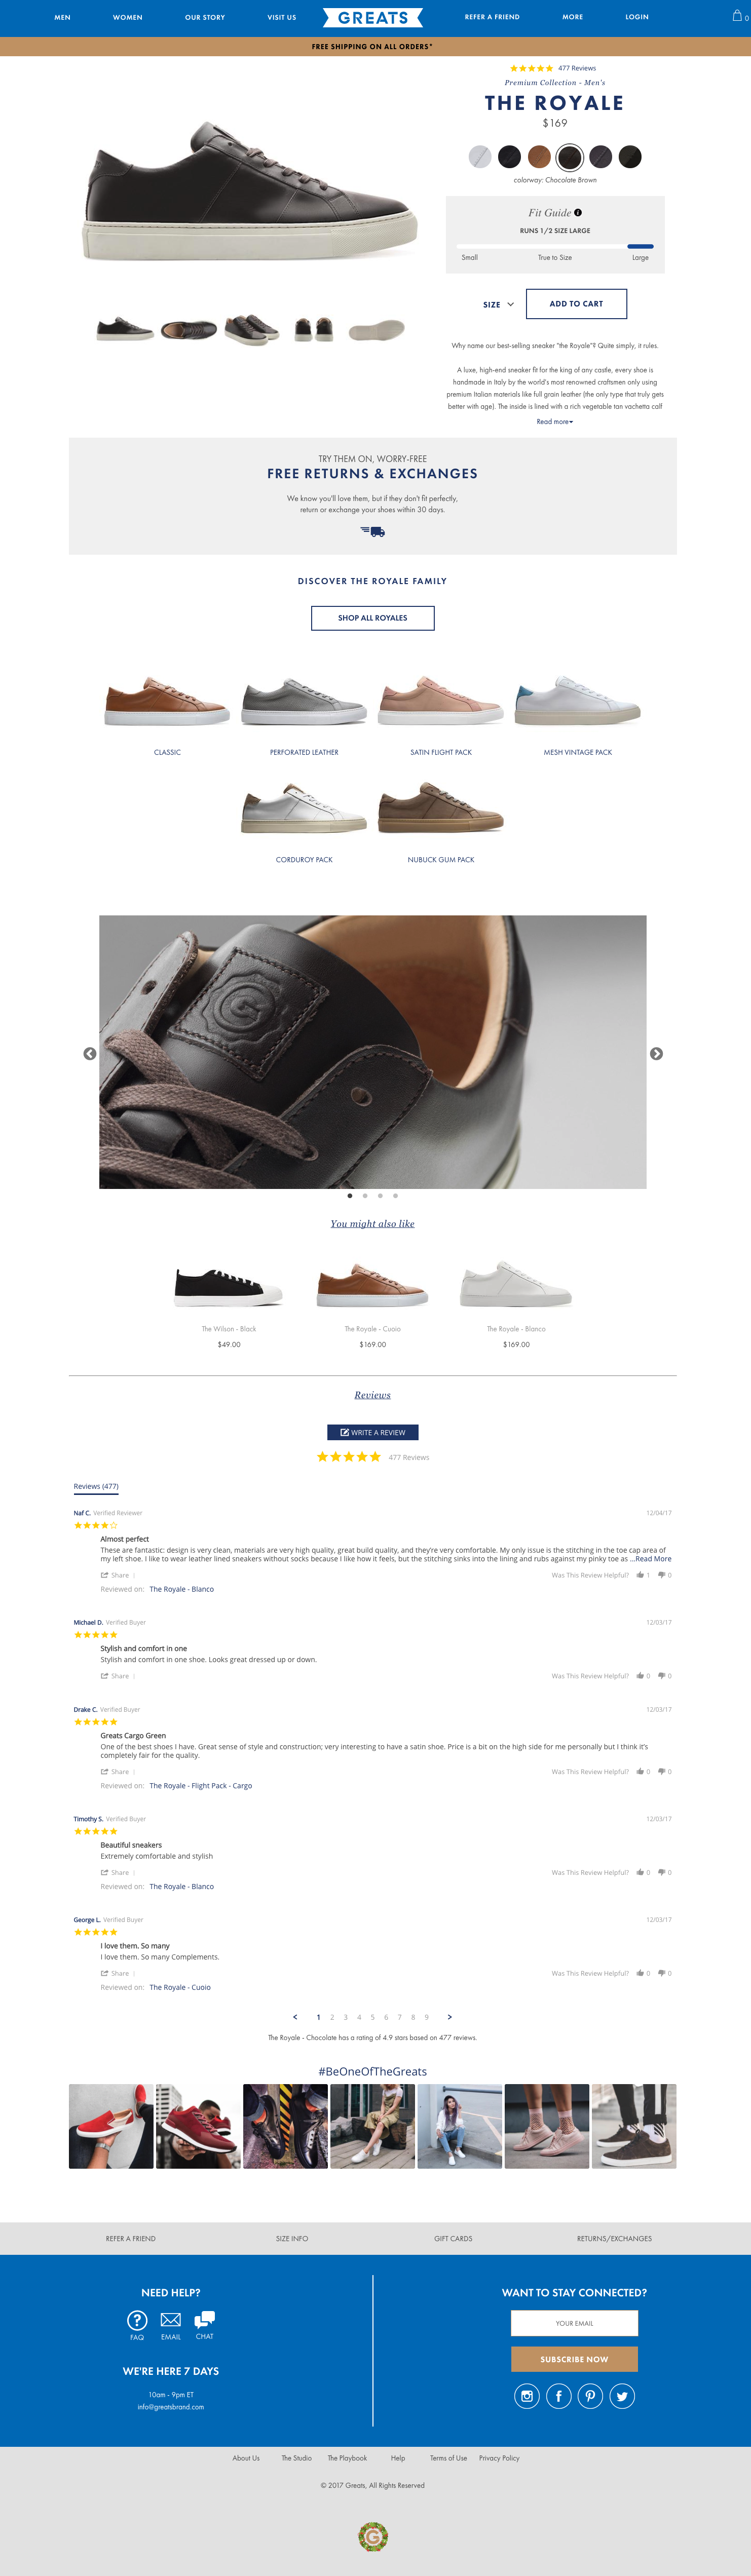 How to Get More Sales from Your Ecommerce Product Page